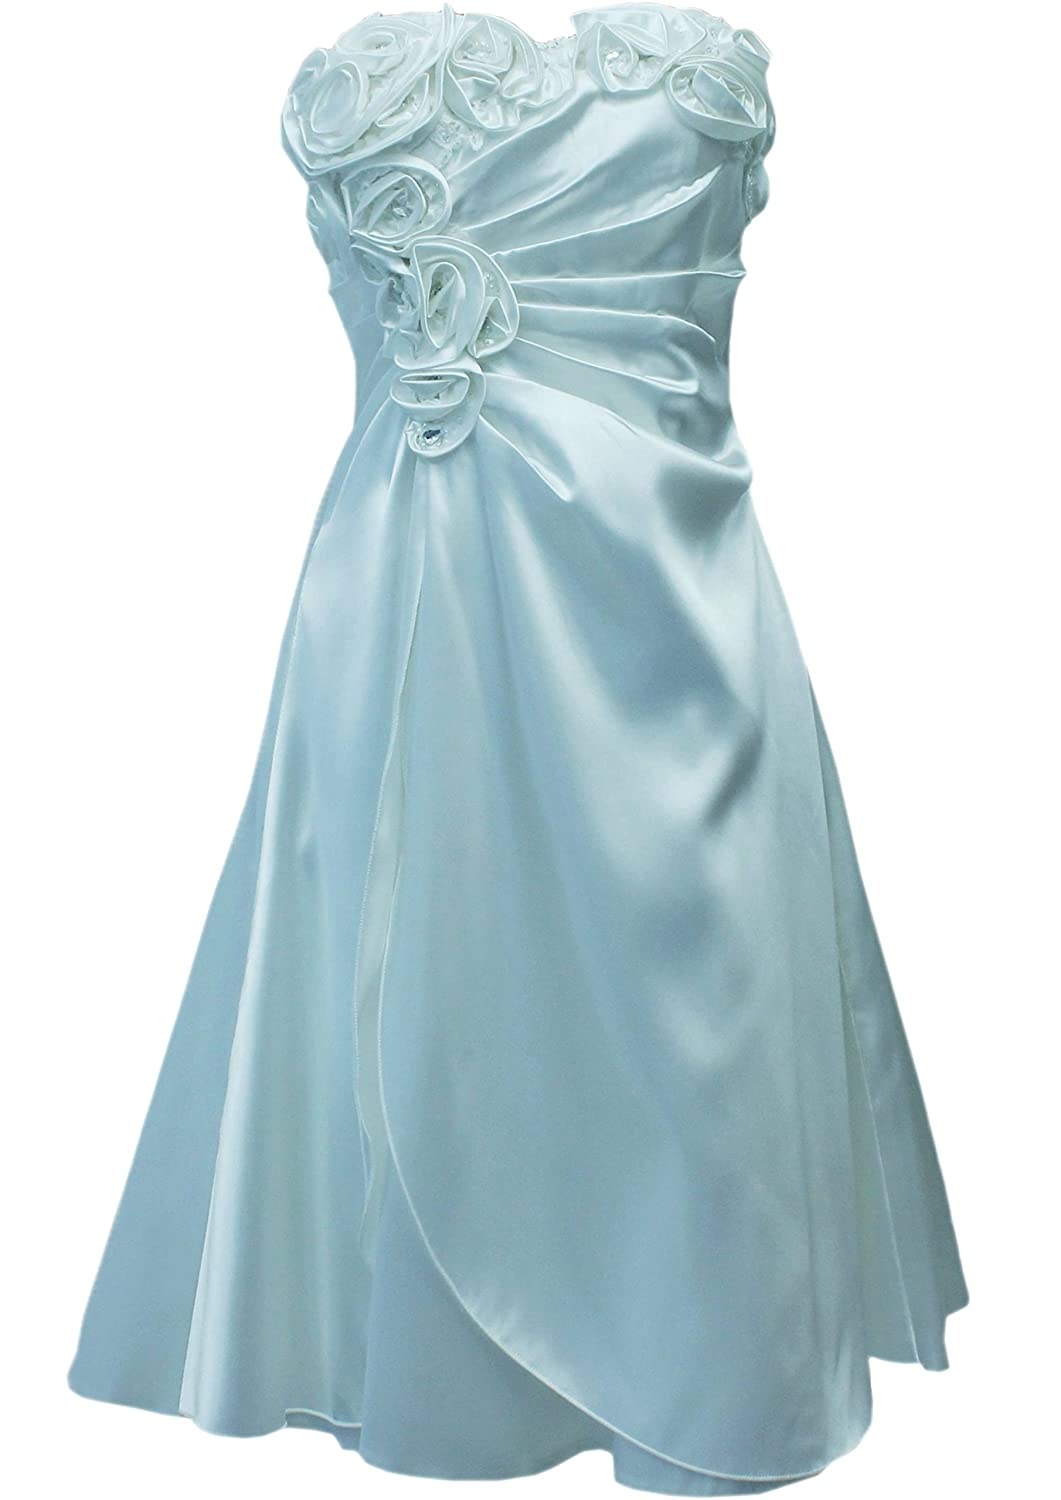 Abendkleid ballkleid cocktailkleid seide